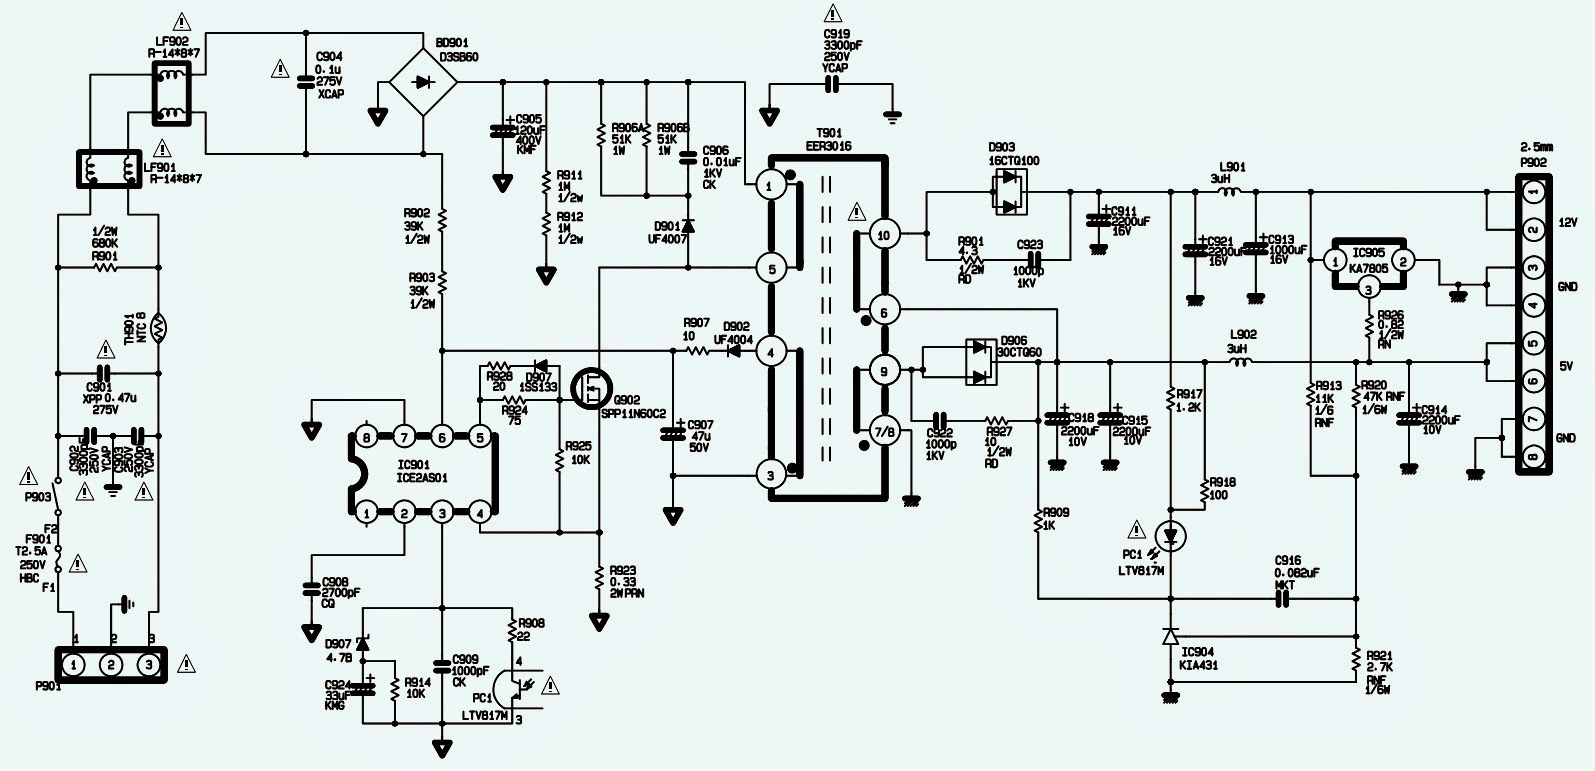 small resolution of wiring schematic diagram lg flatron l1810b monitor smps schematic power supply wiring diagram schematic